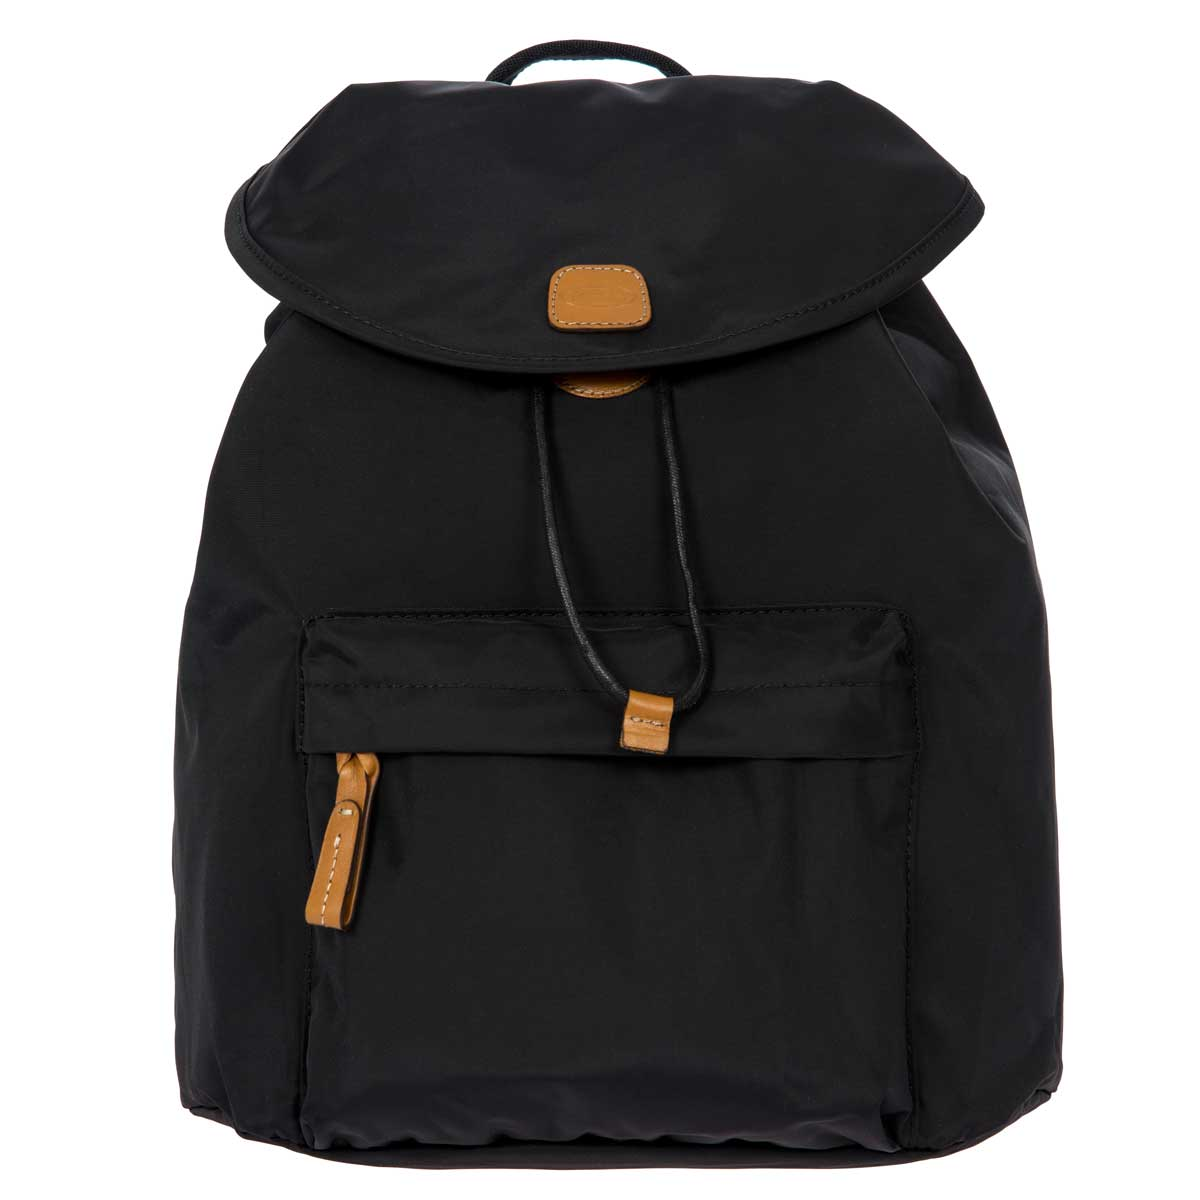 X-Travel City Backpack by Brics (Color: Black)